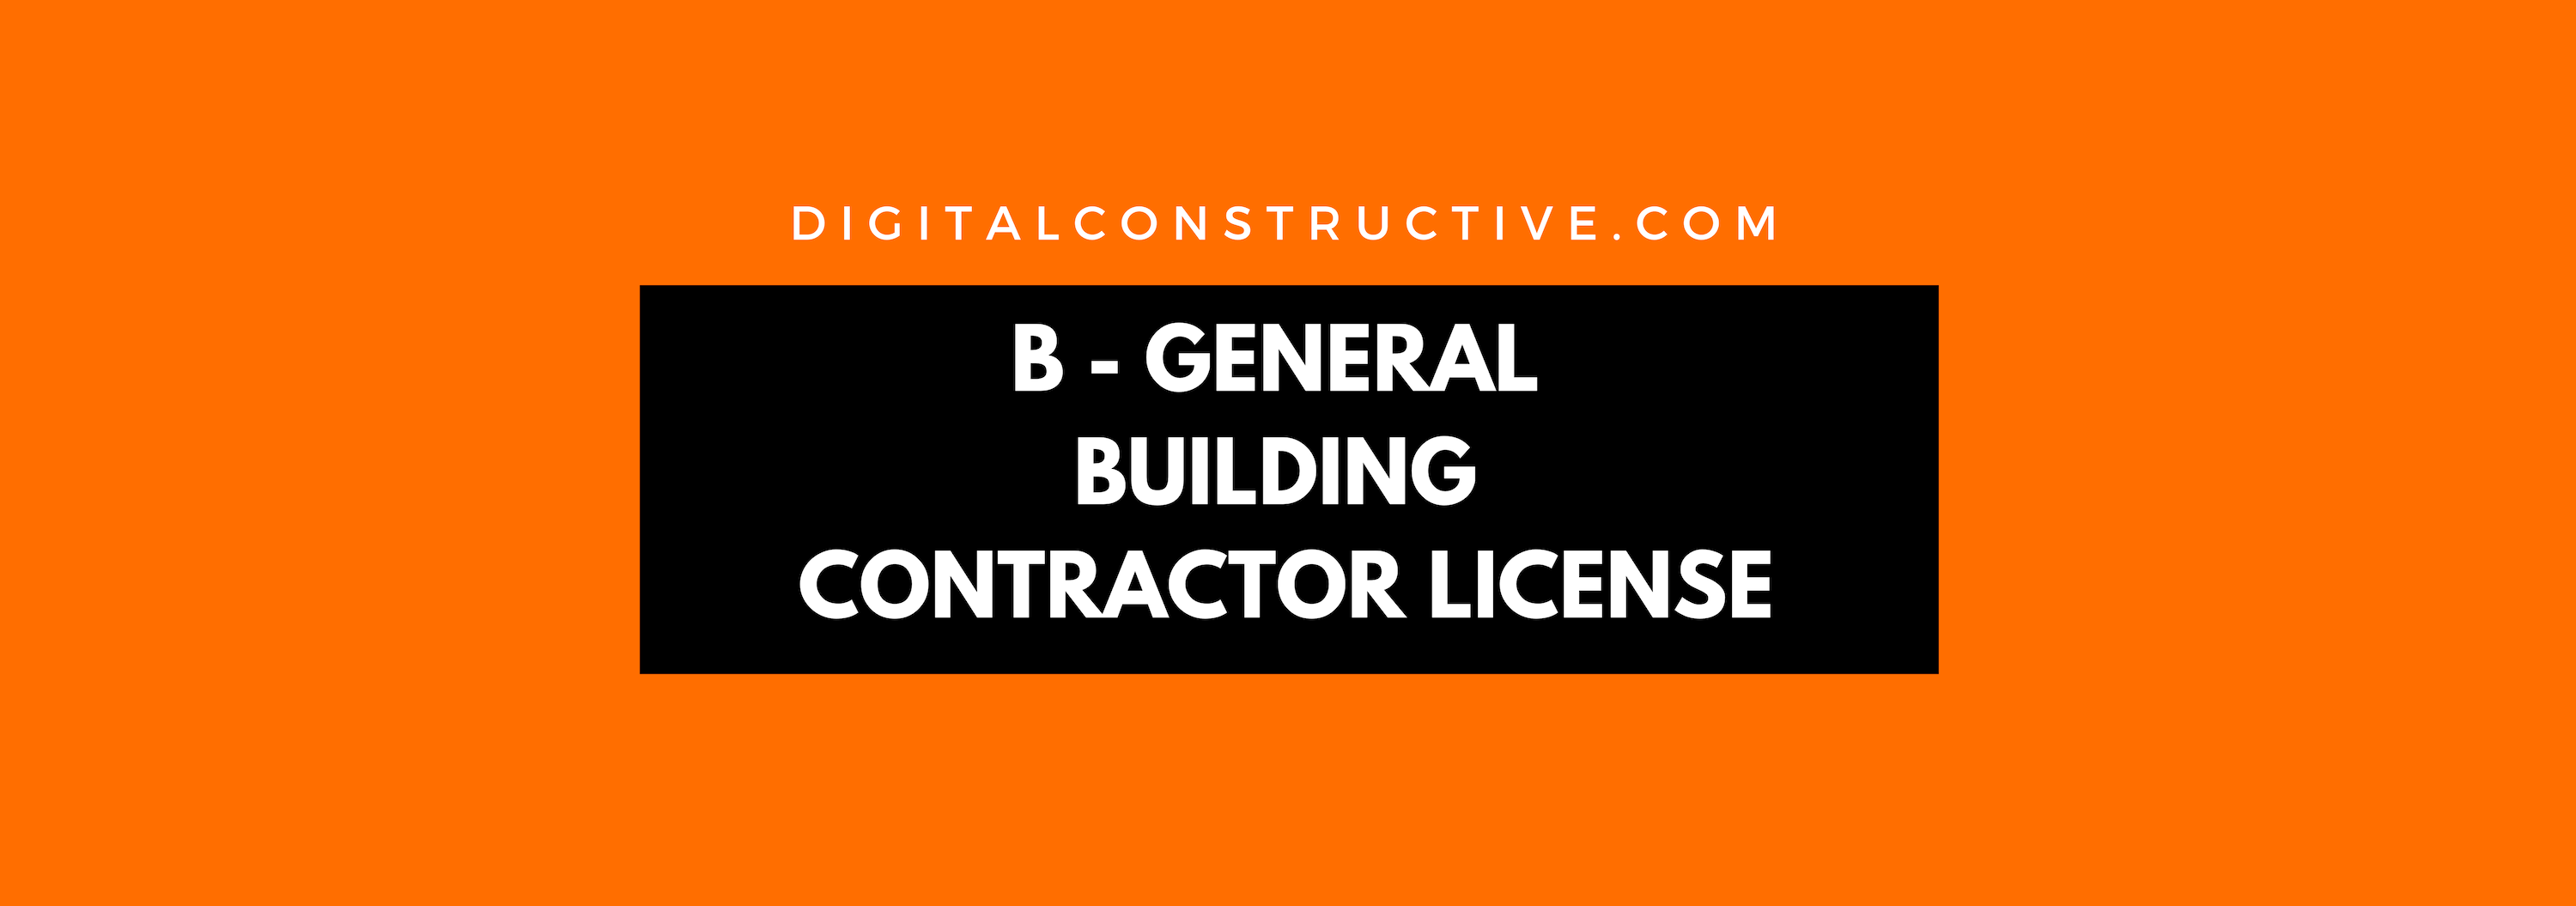 General Contractor License The Complete Guide Digital Constructive